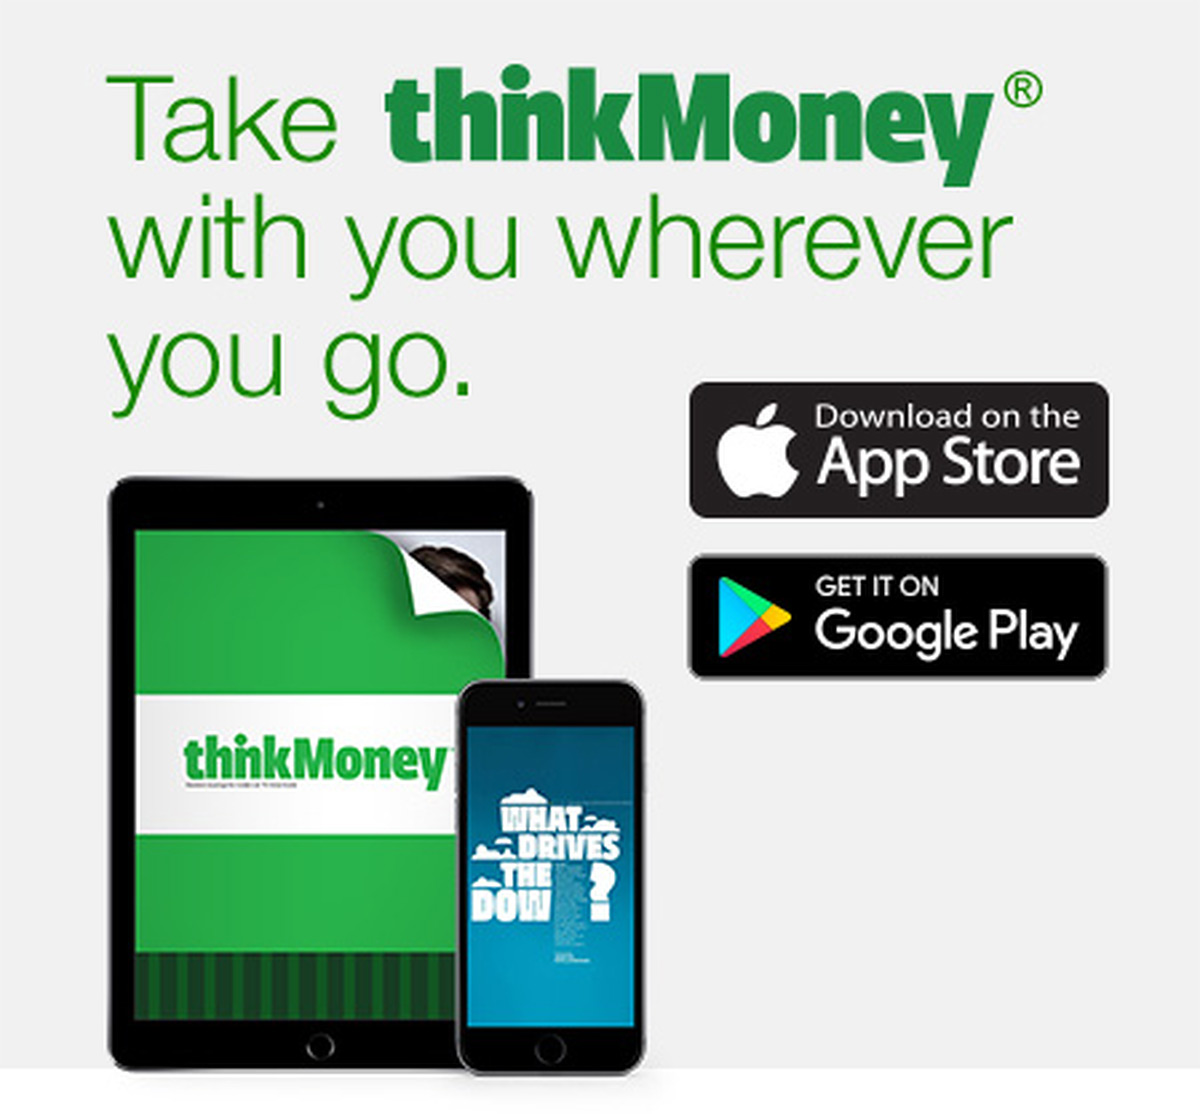 Take thinkMoney with you wherever you go.